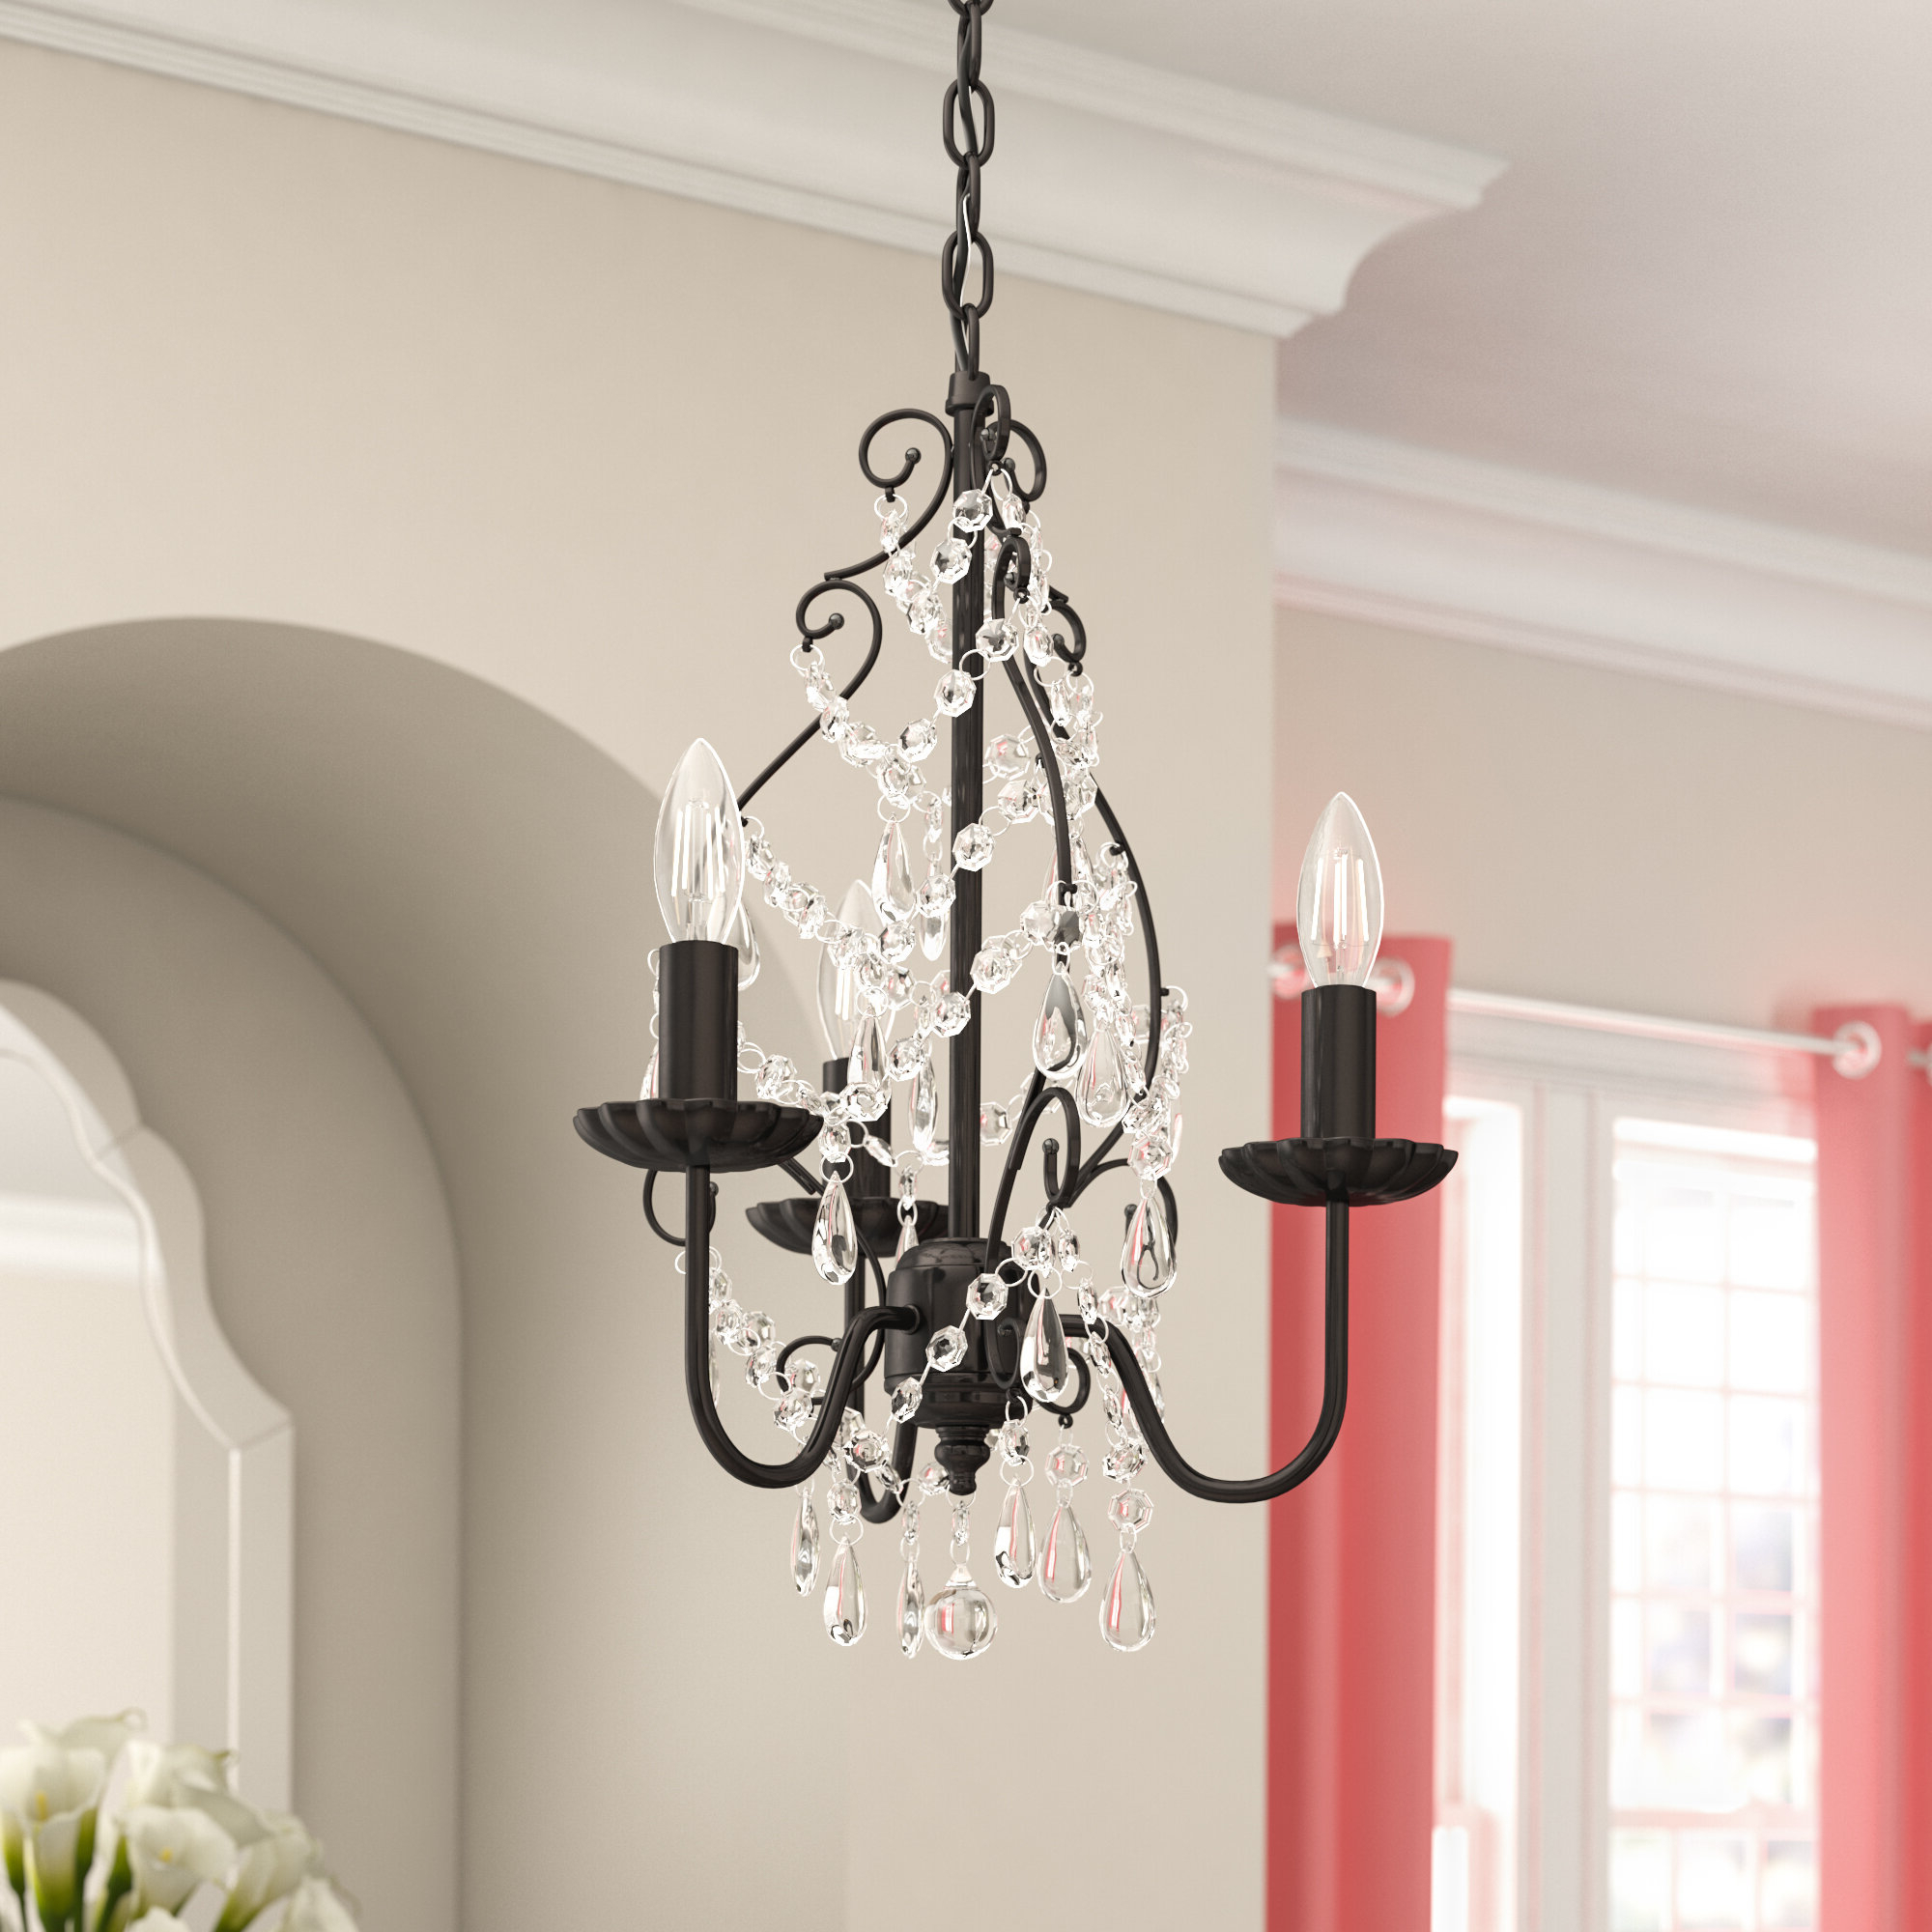 Trendy Blanchette 5 Light Candle Style Chandeliers With Archway 3 Light Candle Style Chandelier (View 18 of 20)